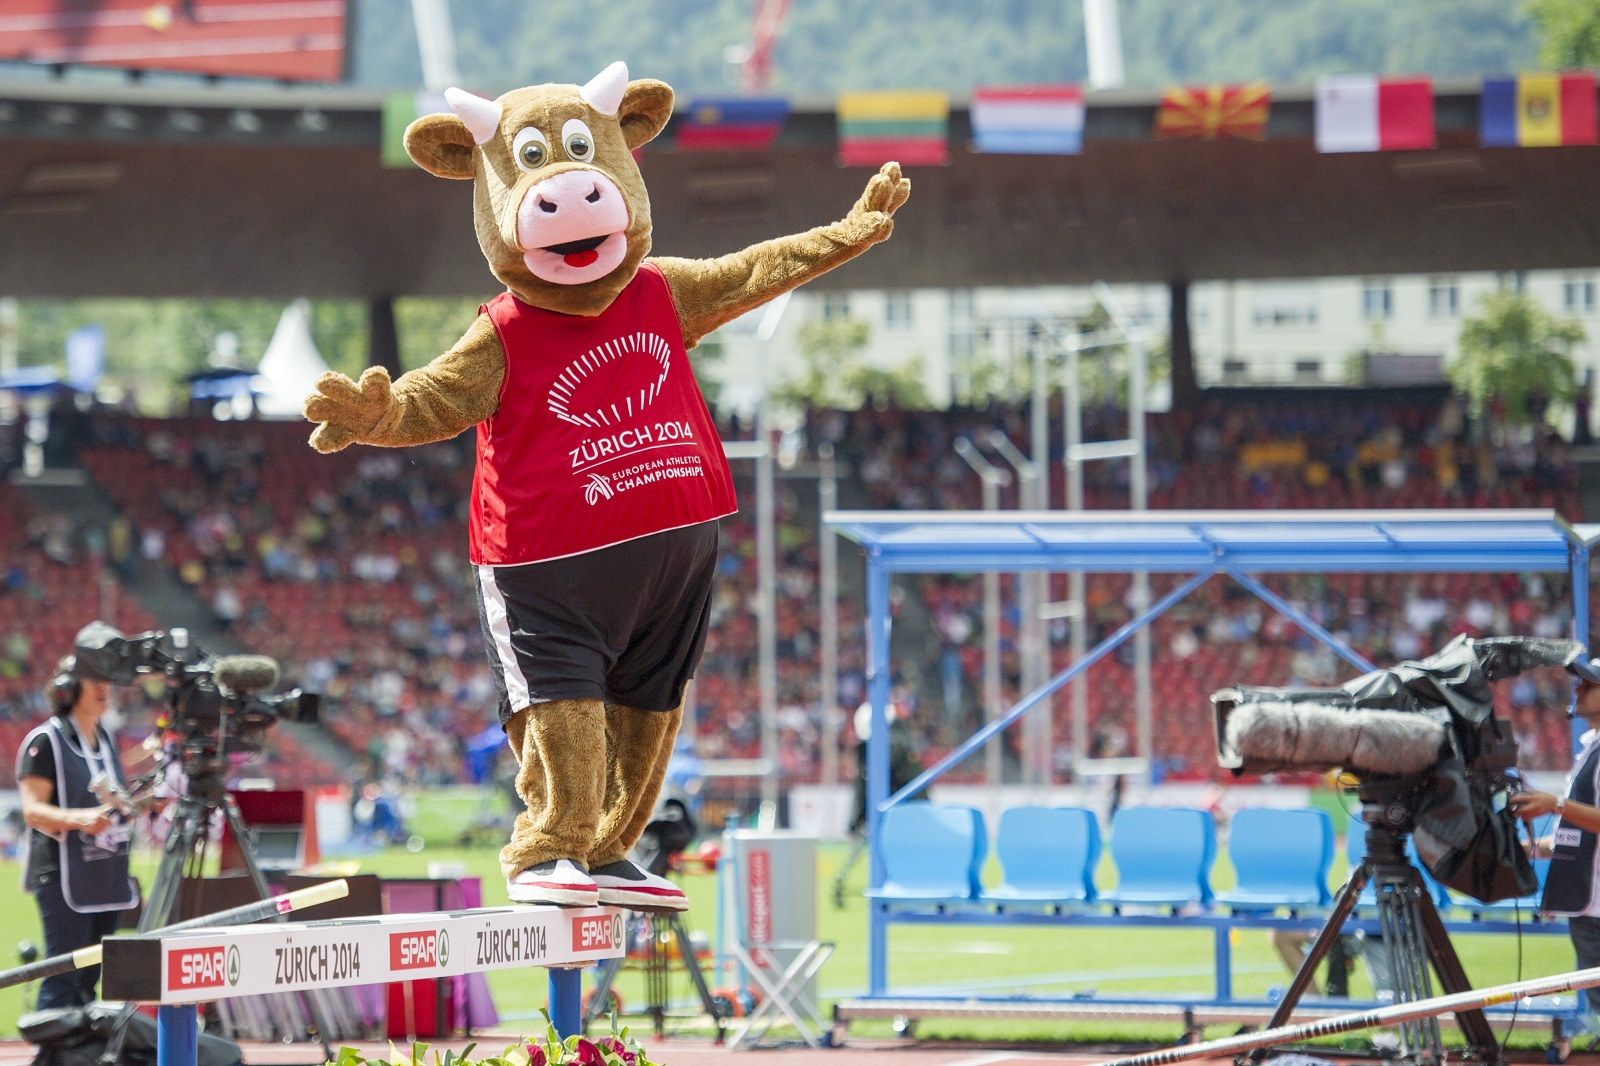 2014 European Athletics Championship_Zurich_Switzerland_2014_August_Original_63206